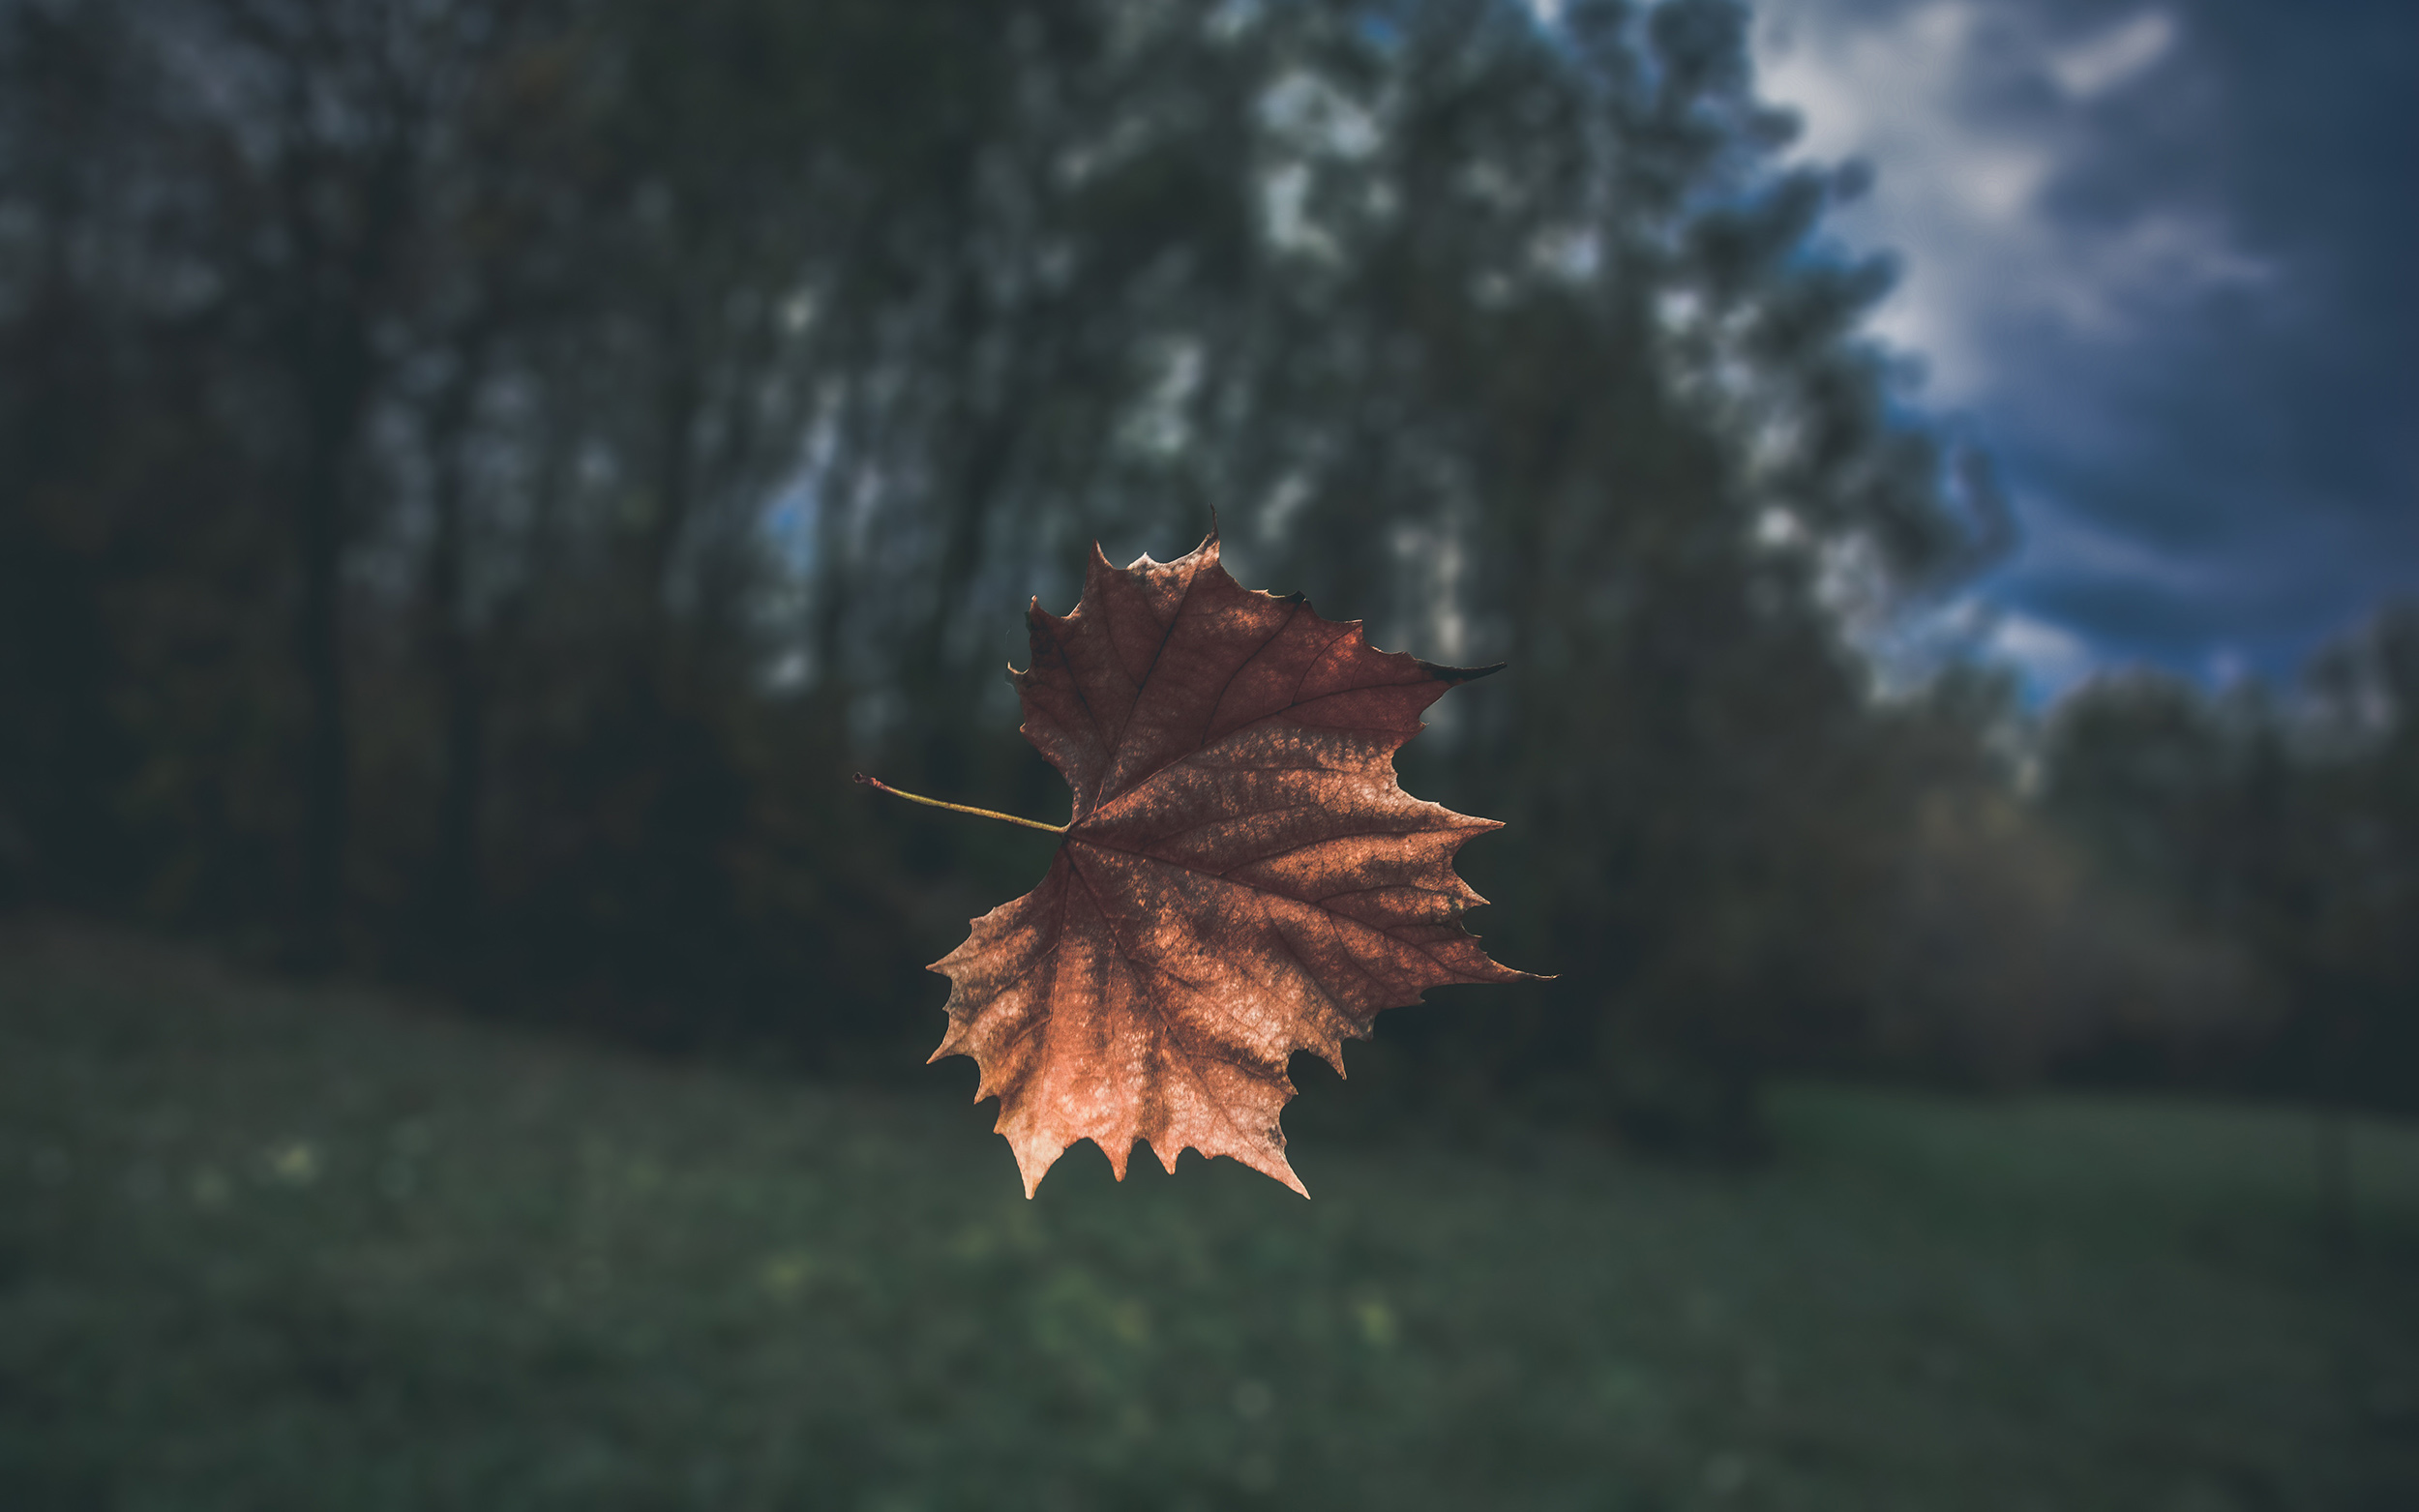 Leaf in the wind.